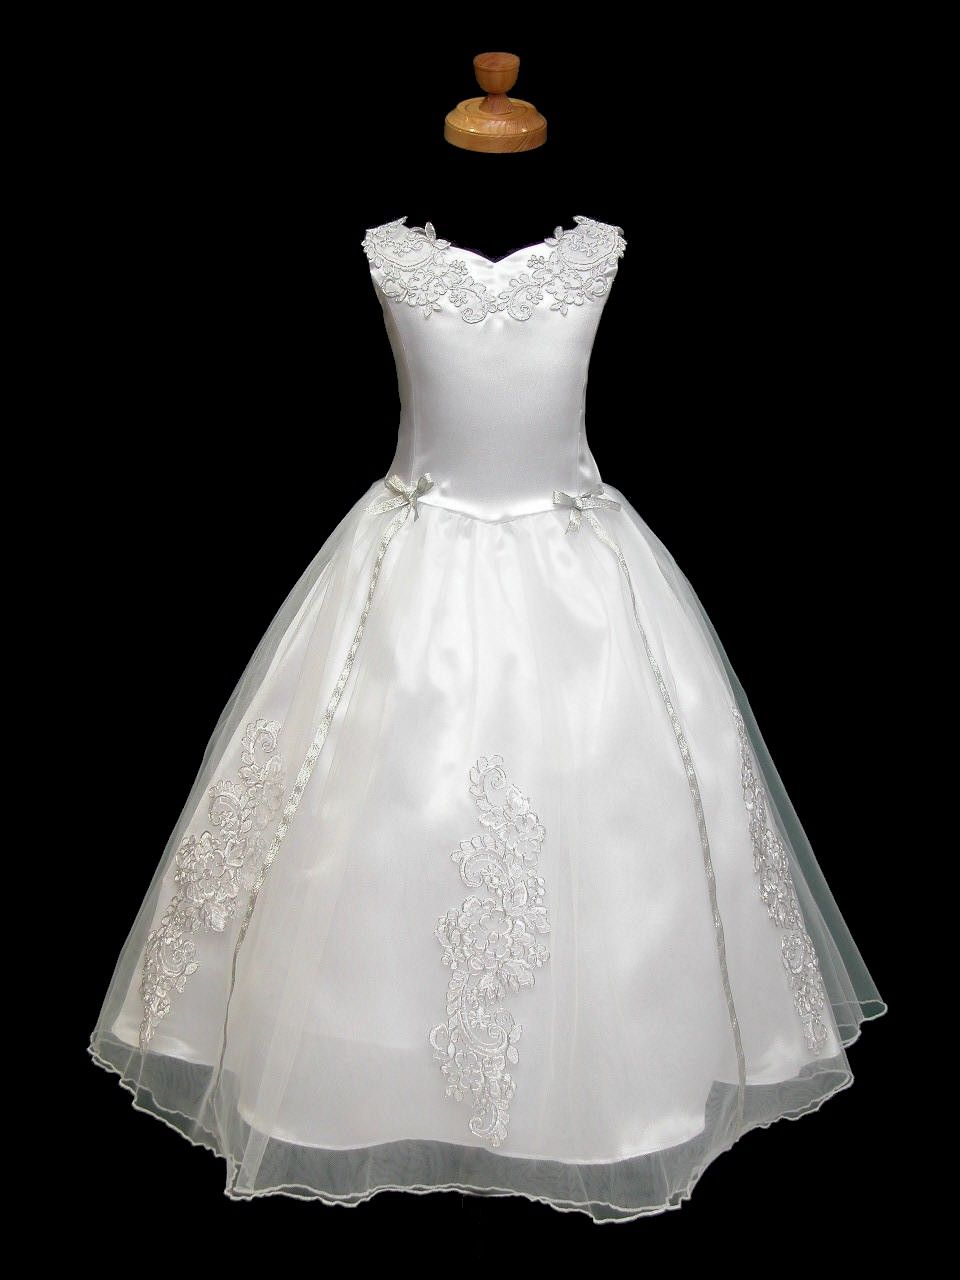 Cheap 2012 Absorbing aBest Selling cute A Line First Communion Dress     Cheap 2012 Absorbing aBest Selling cute A Line First Communion Dress   Wholesale  First Communion Dresses   victoriafirstcommunion com